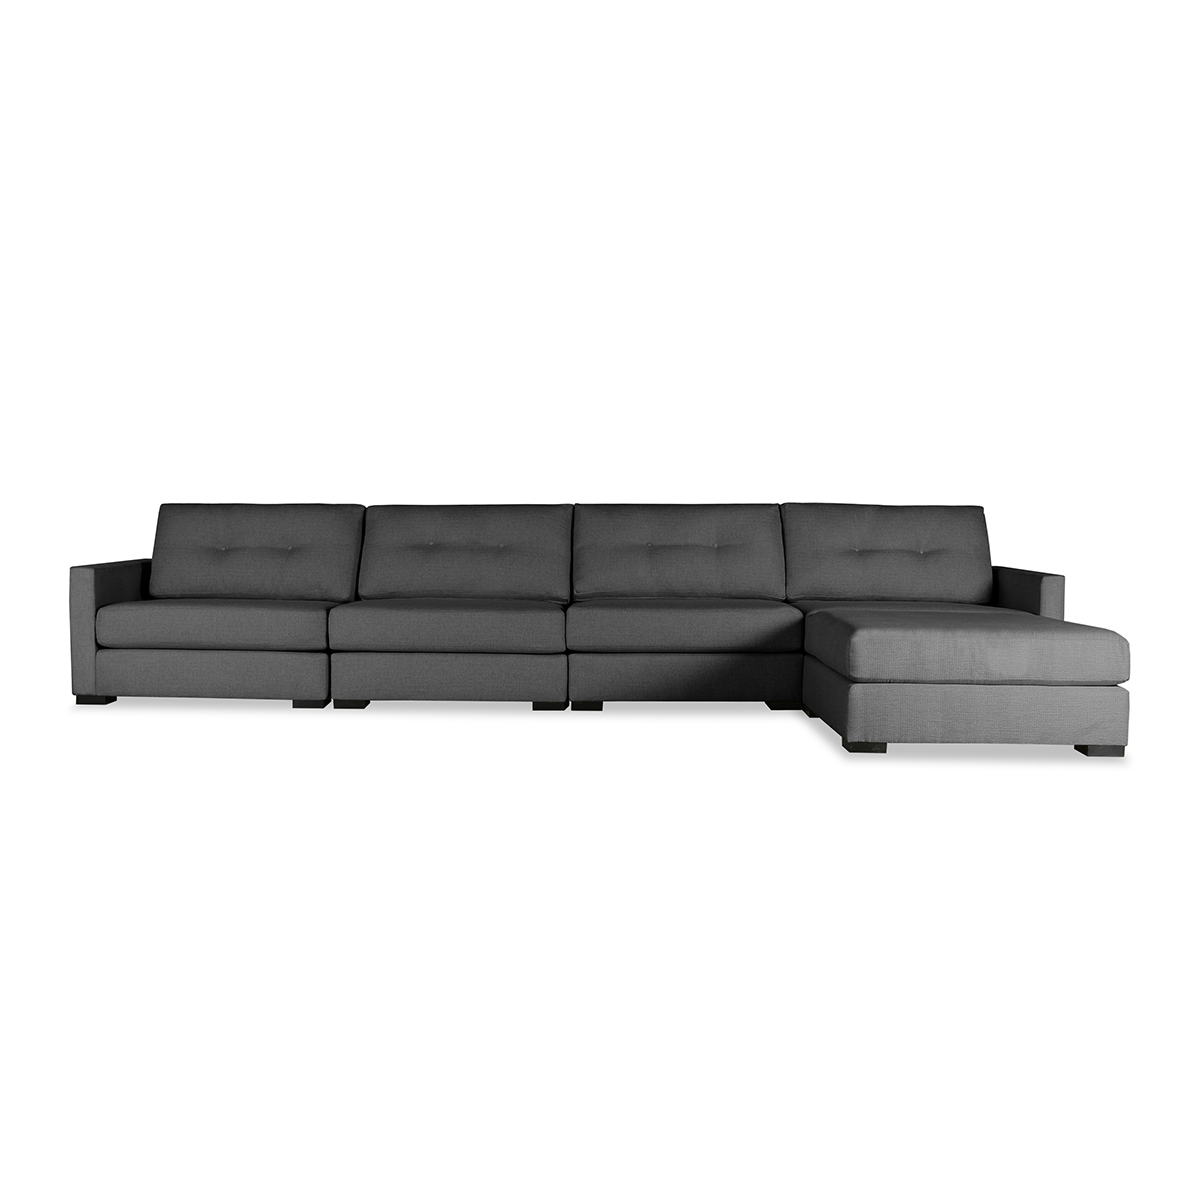 Wilton Buttoned Modular Right Chaise Sectional Intended For Wilton Fabric Sectional Sofas (View 6 of 15)